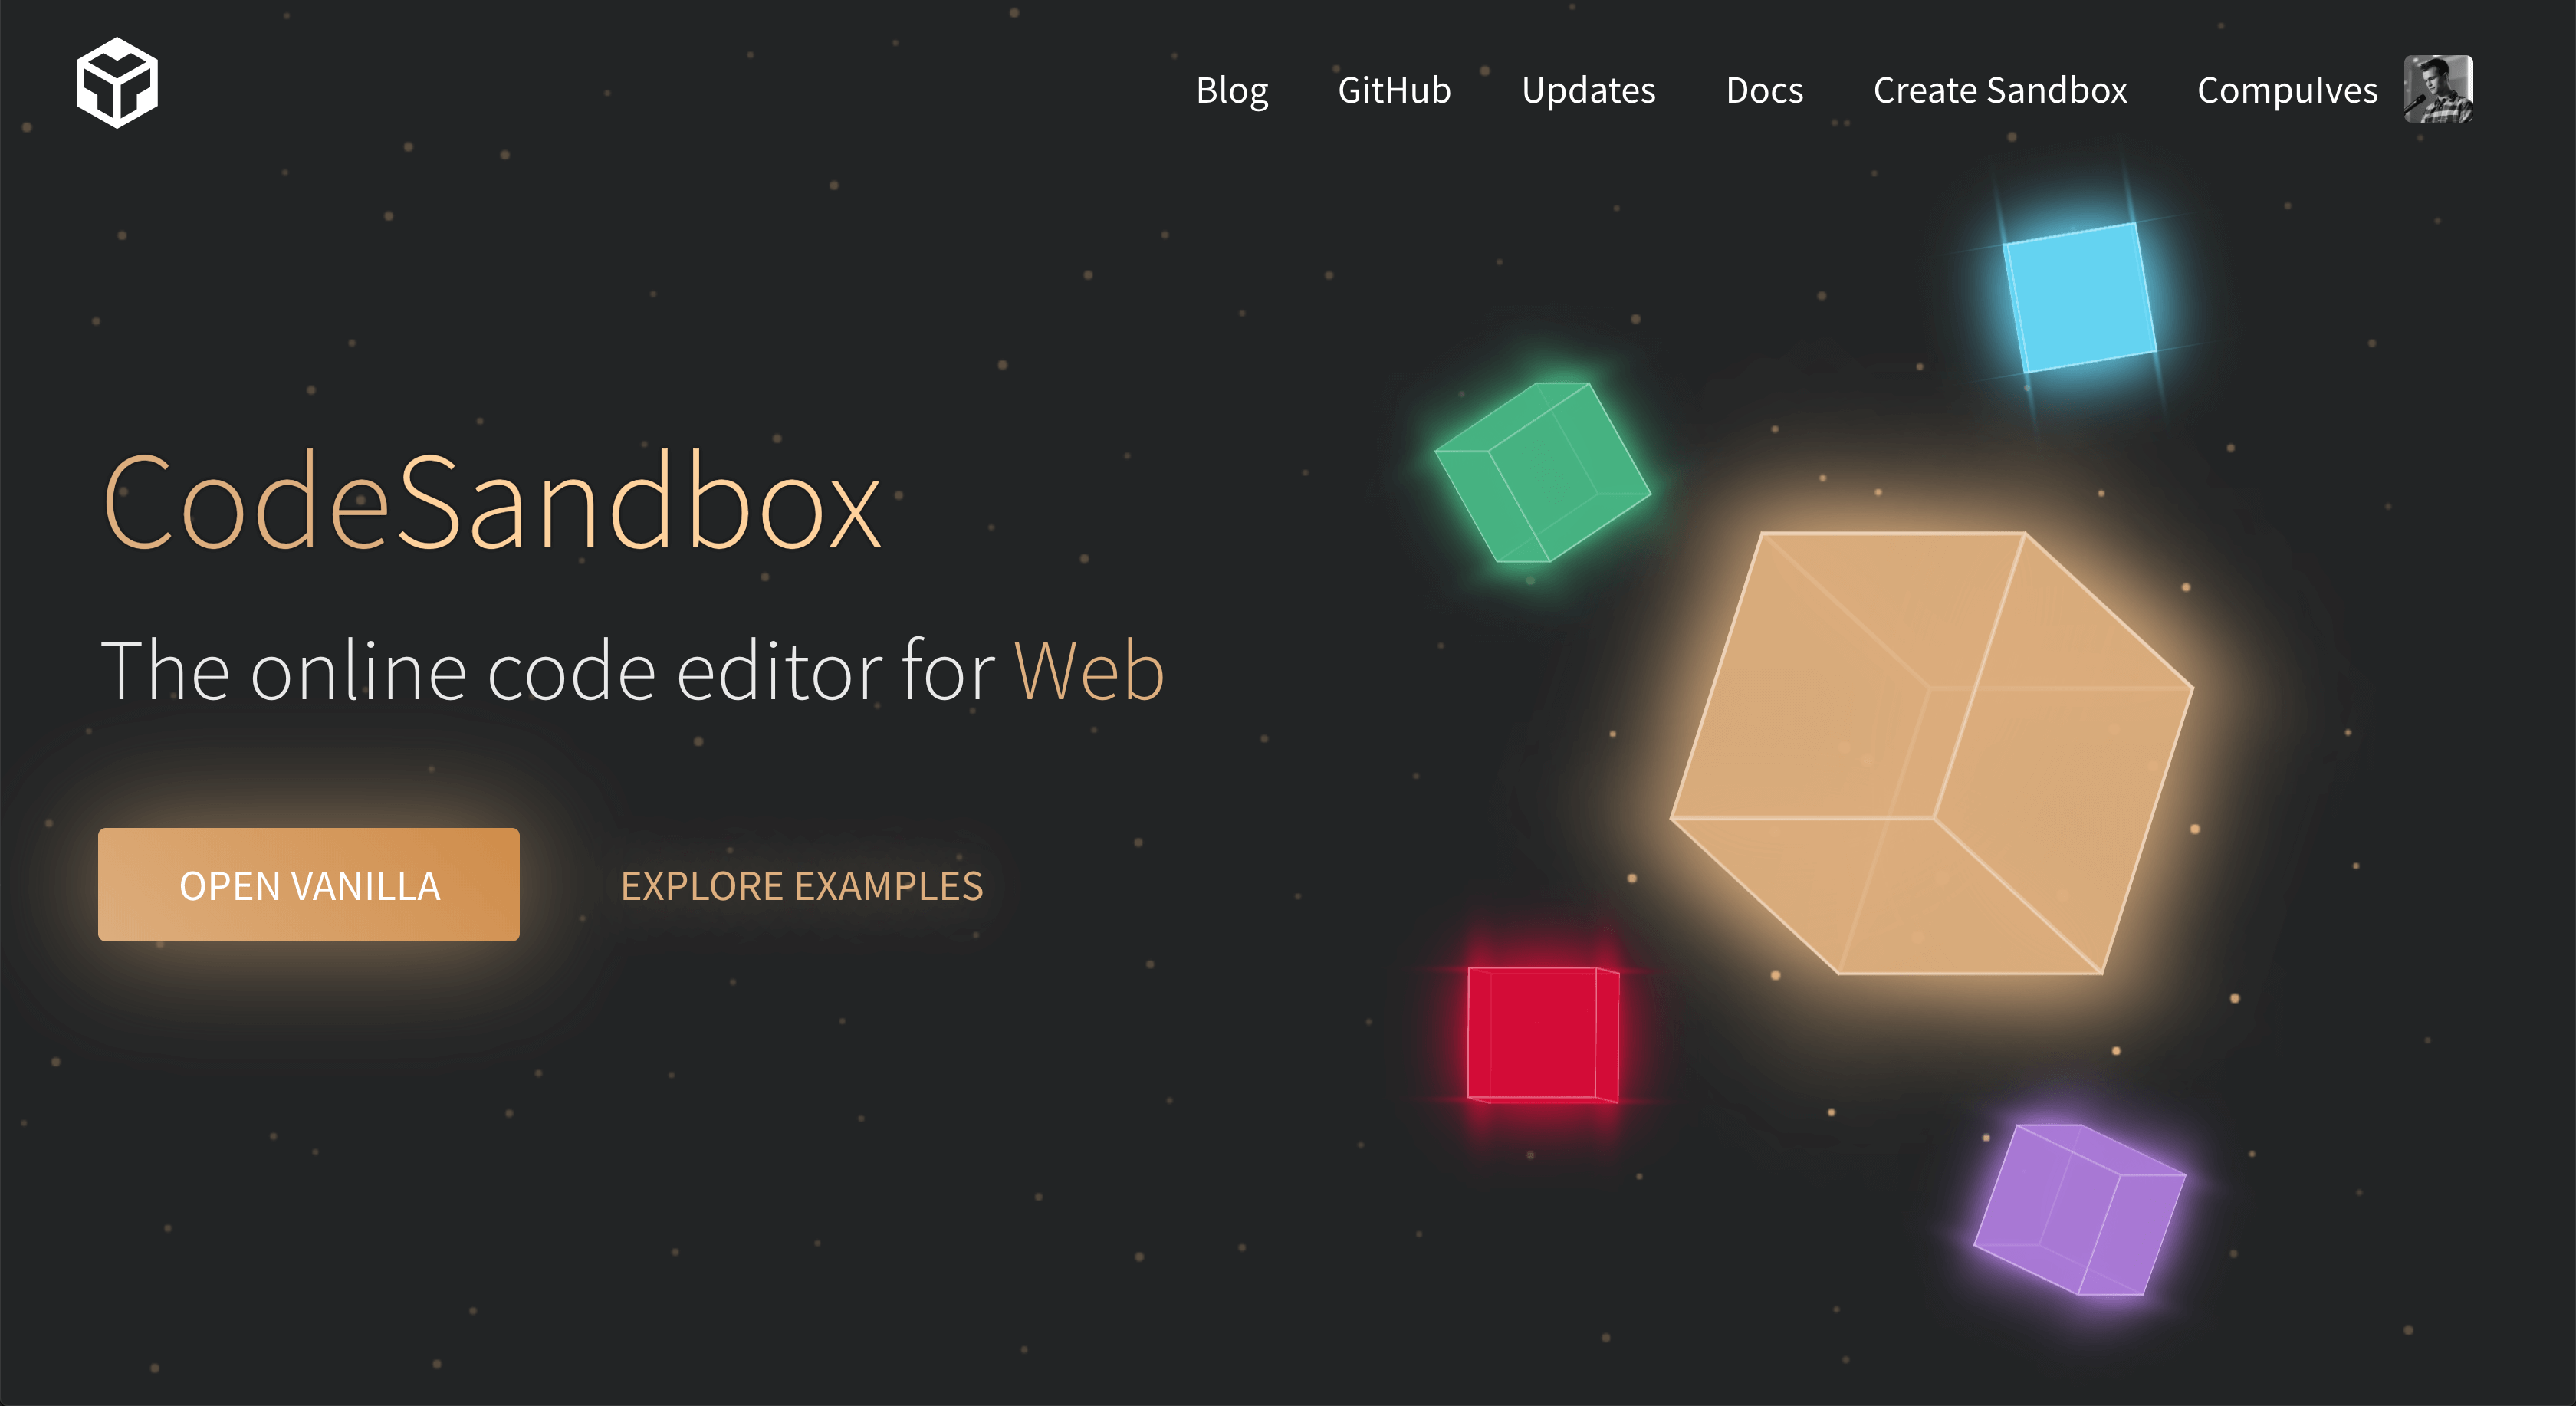 What's Unique About CodeSandbox